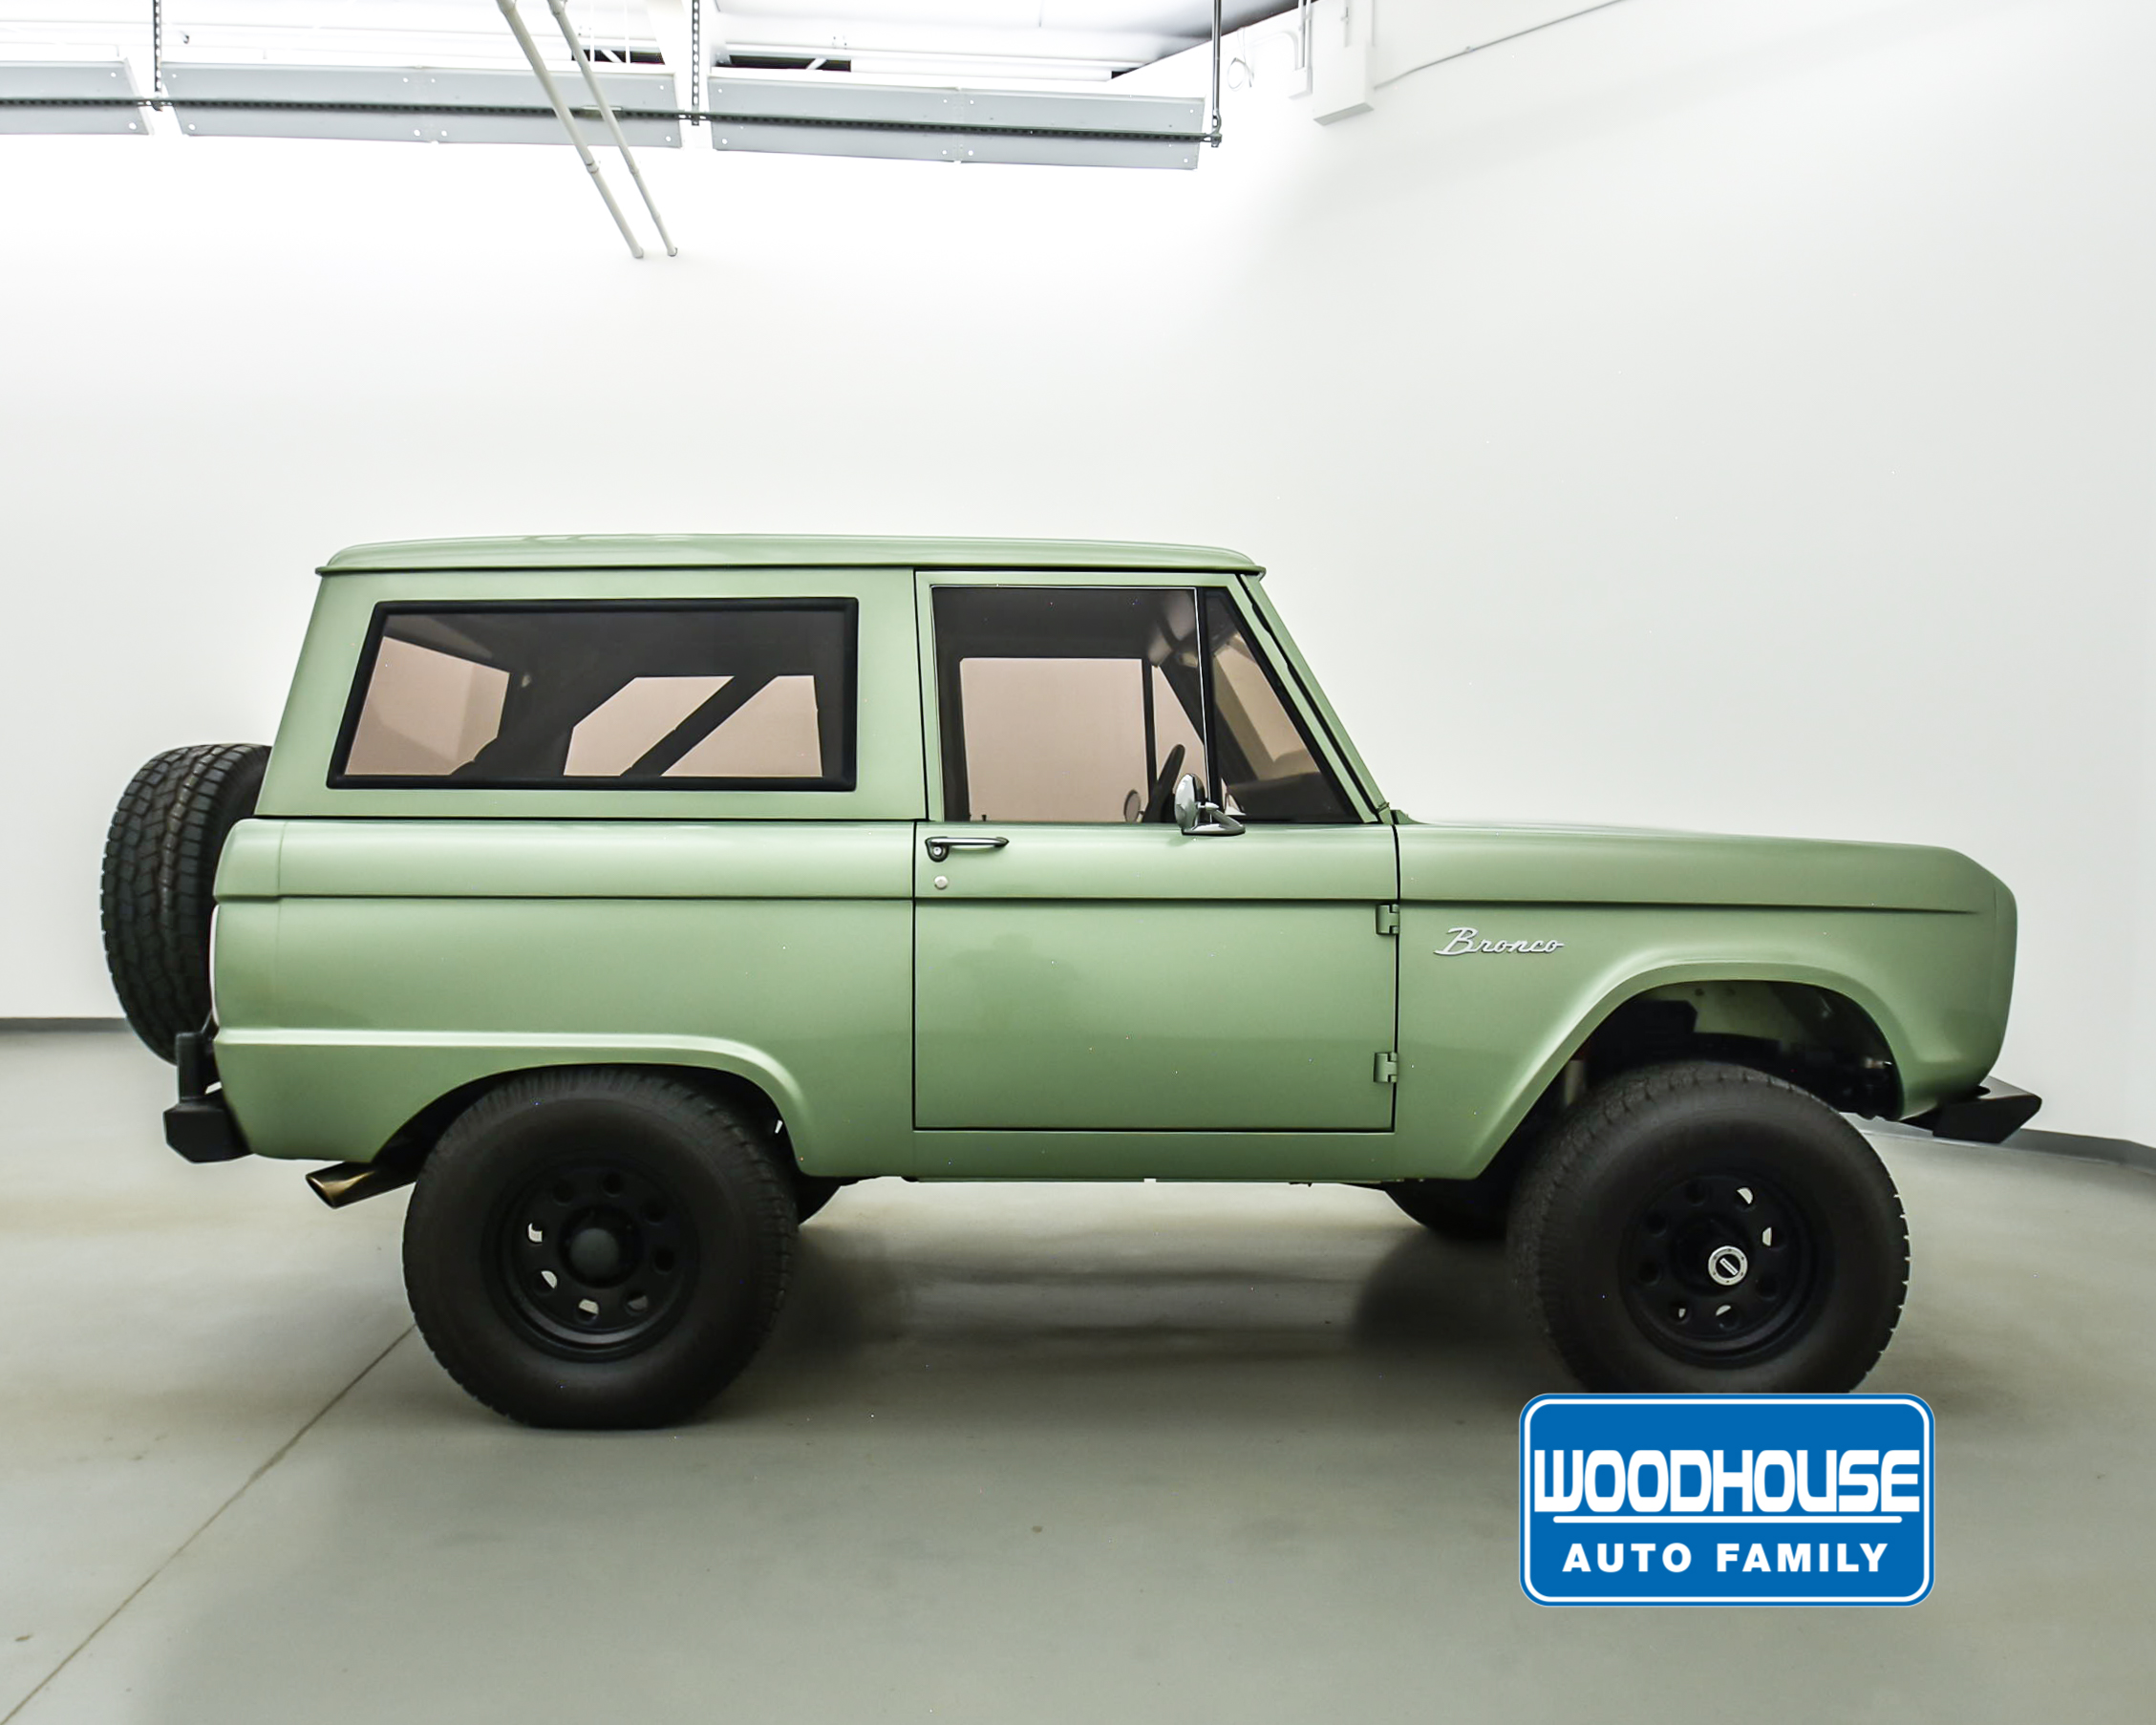 Uploads 2f04 a4836 772136 bronco.jpg   1550681793472   v3paqtv0no   vehicleimage   324383   04 a4836 772136 bronco